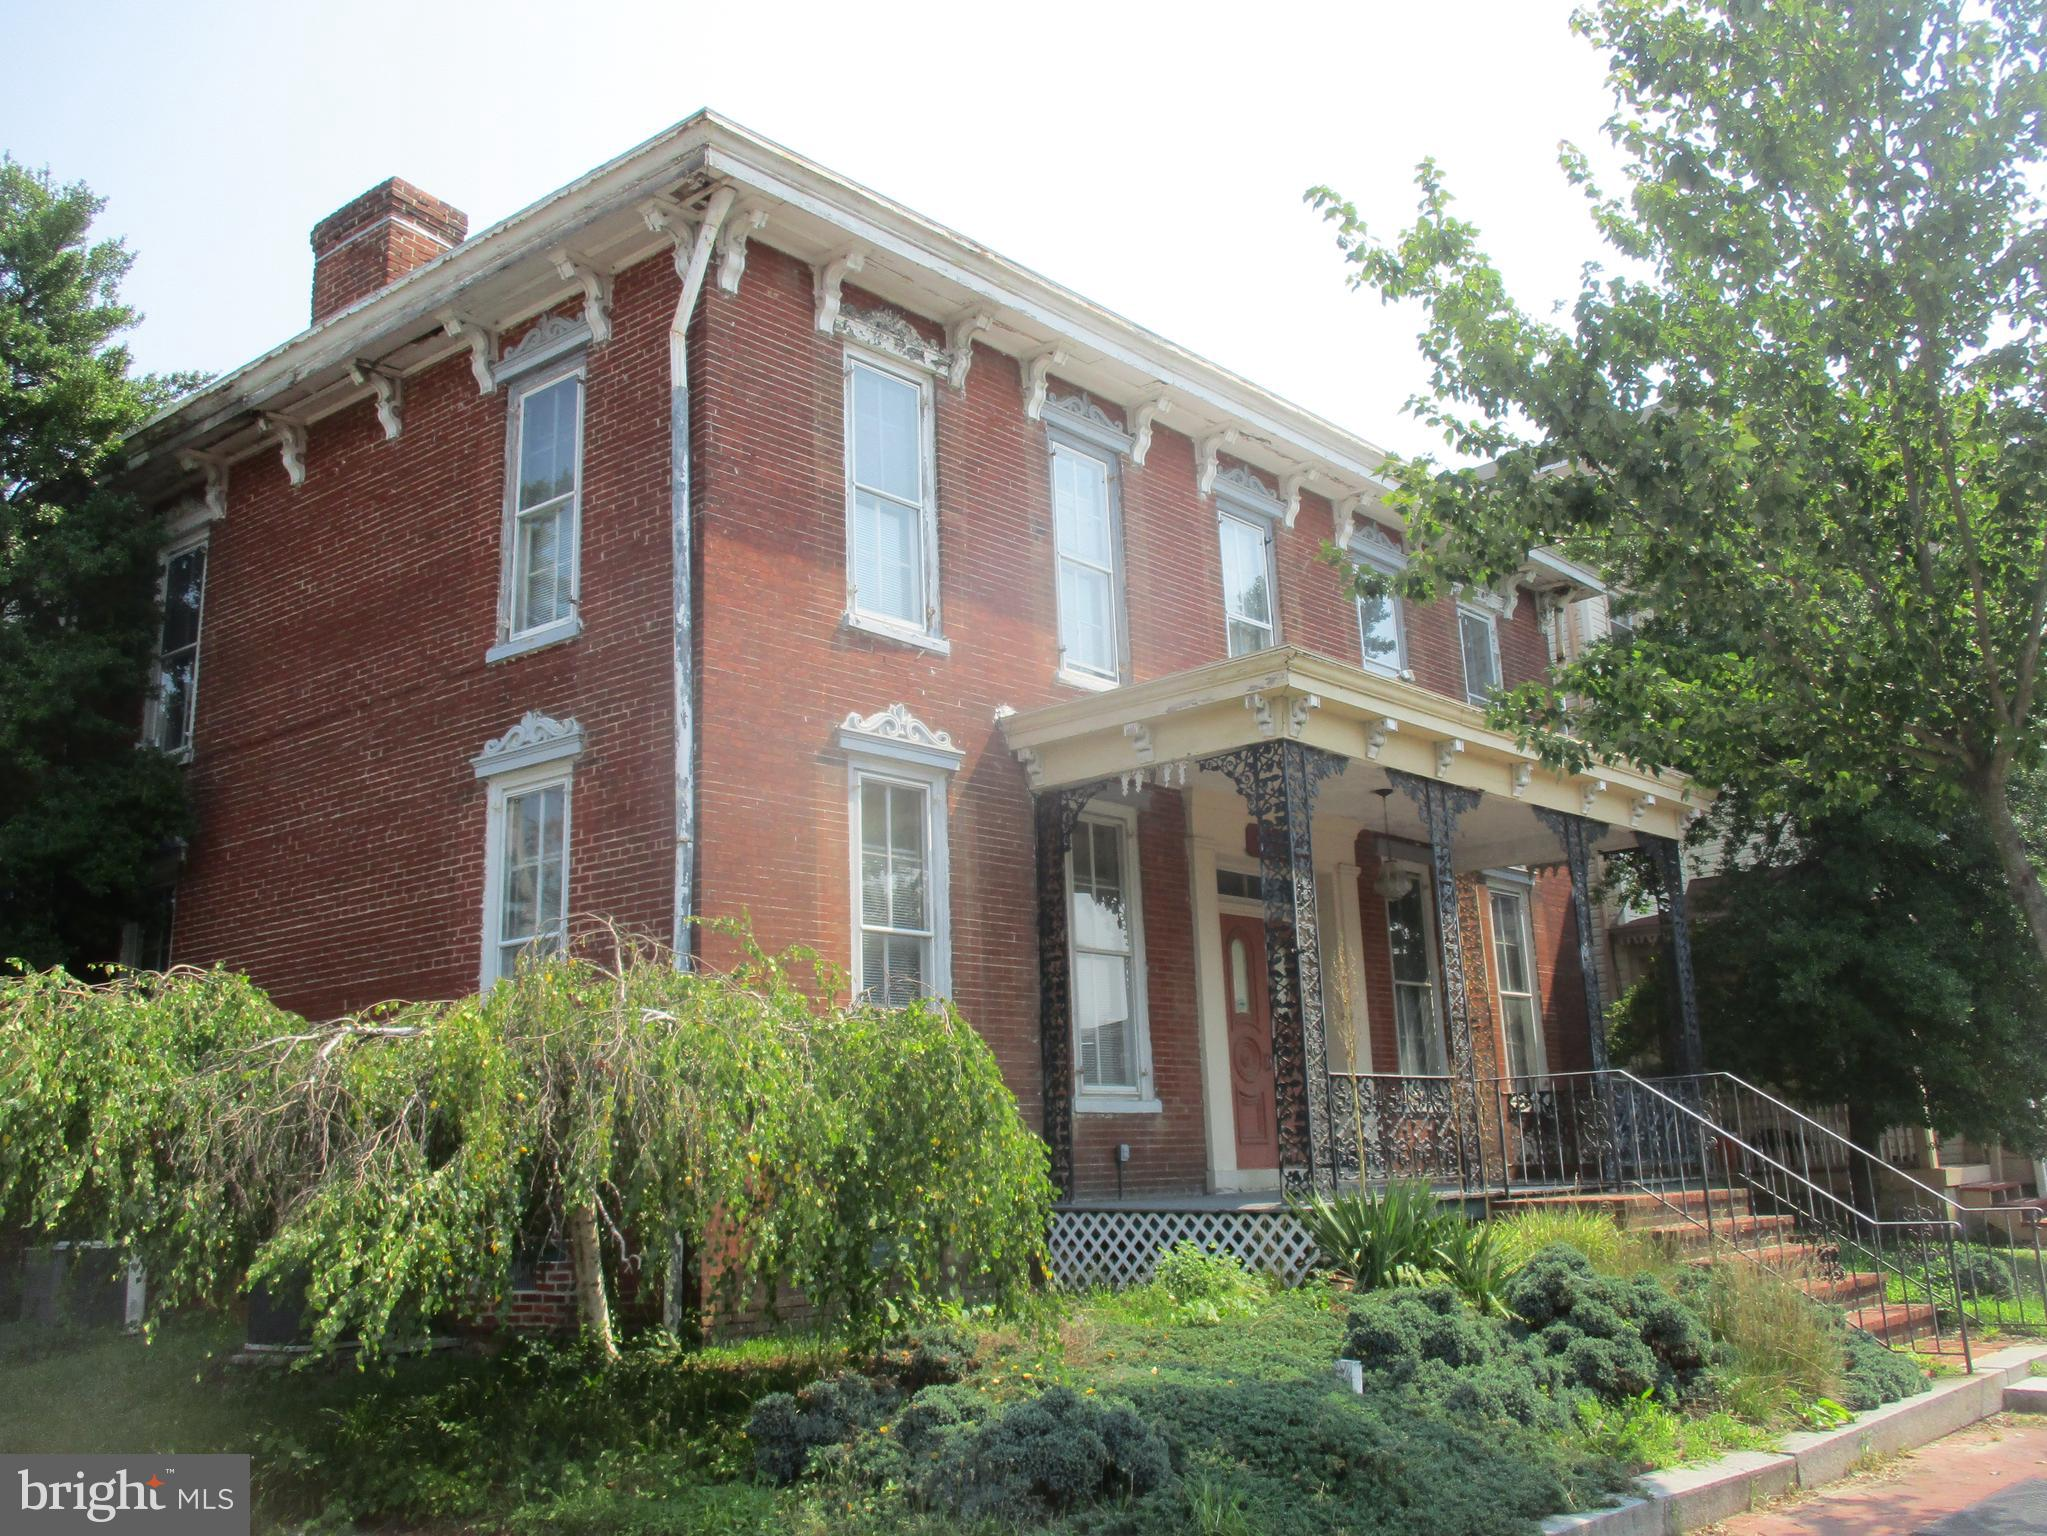 Price Reduced! Italianate style two story brick mid 19th century structure. Has been a residence, a restaurant, and last used a residence and antique store. Listed on the National Register of Historic places this property contains many features such as ornate wrought iron porch trim, decorative lintels above windows, high ceilings, fireplaces, and more. If you love old homes and have the energy and vision to restore it to it's former glory then this may be the house for you. Sold as-is.